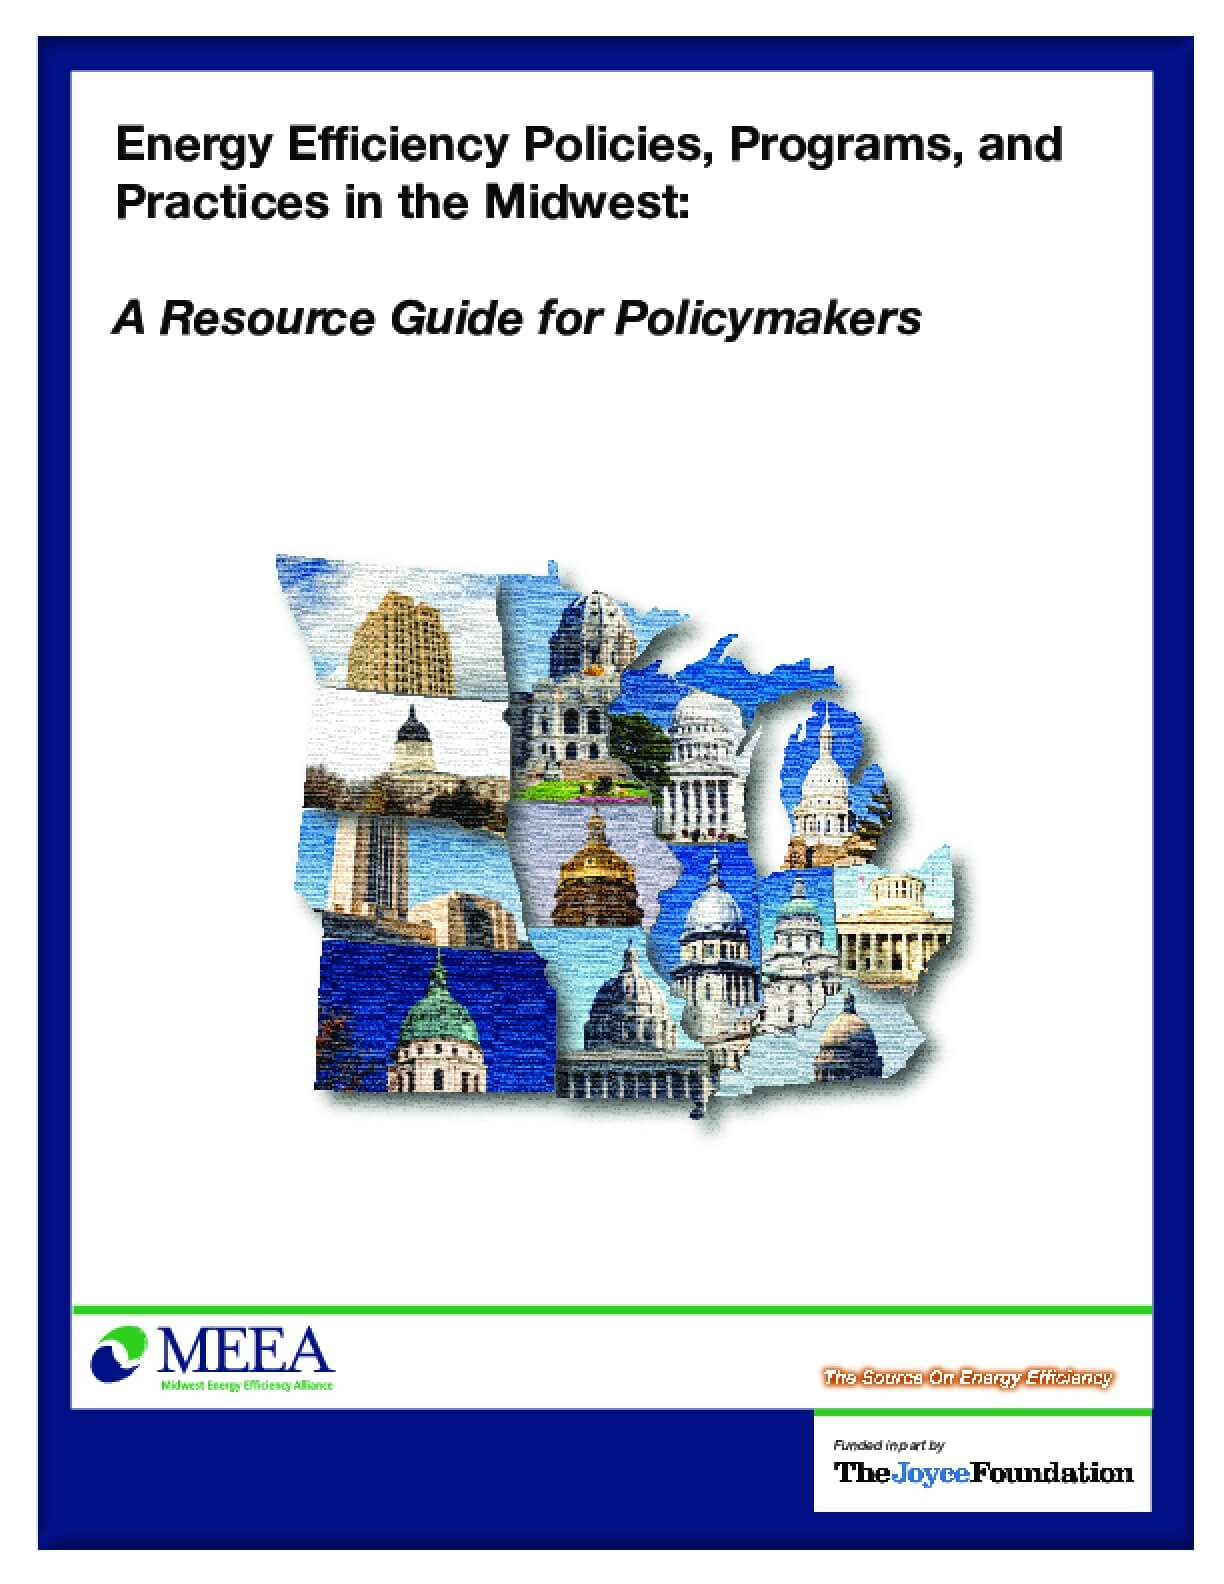 Energy Efficiency Policies, Programs, and Practices in the Midwest: A Resource Guide for Policymakers